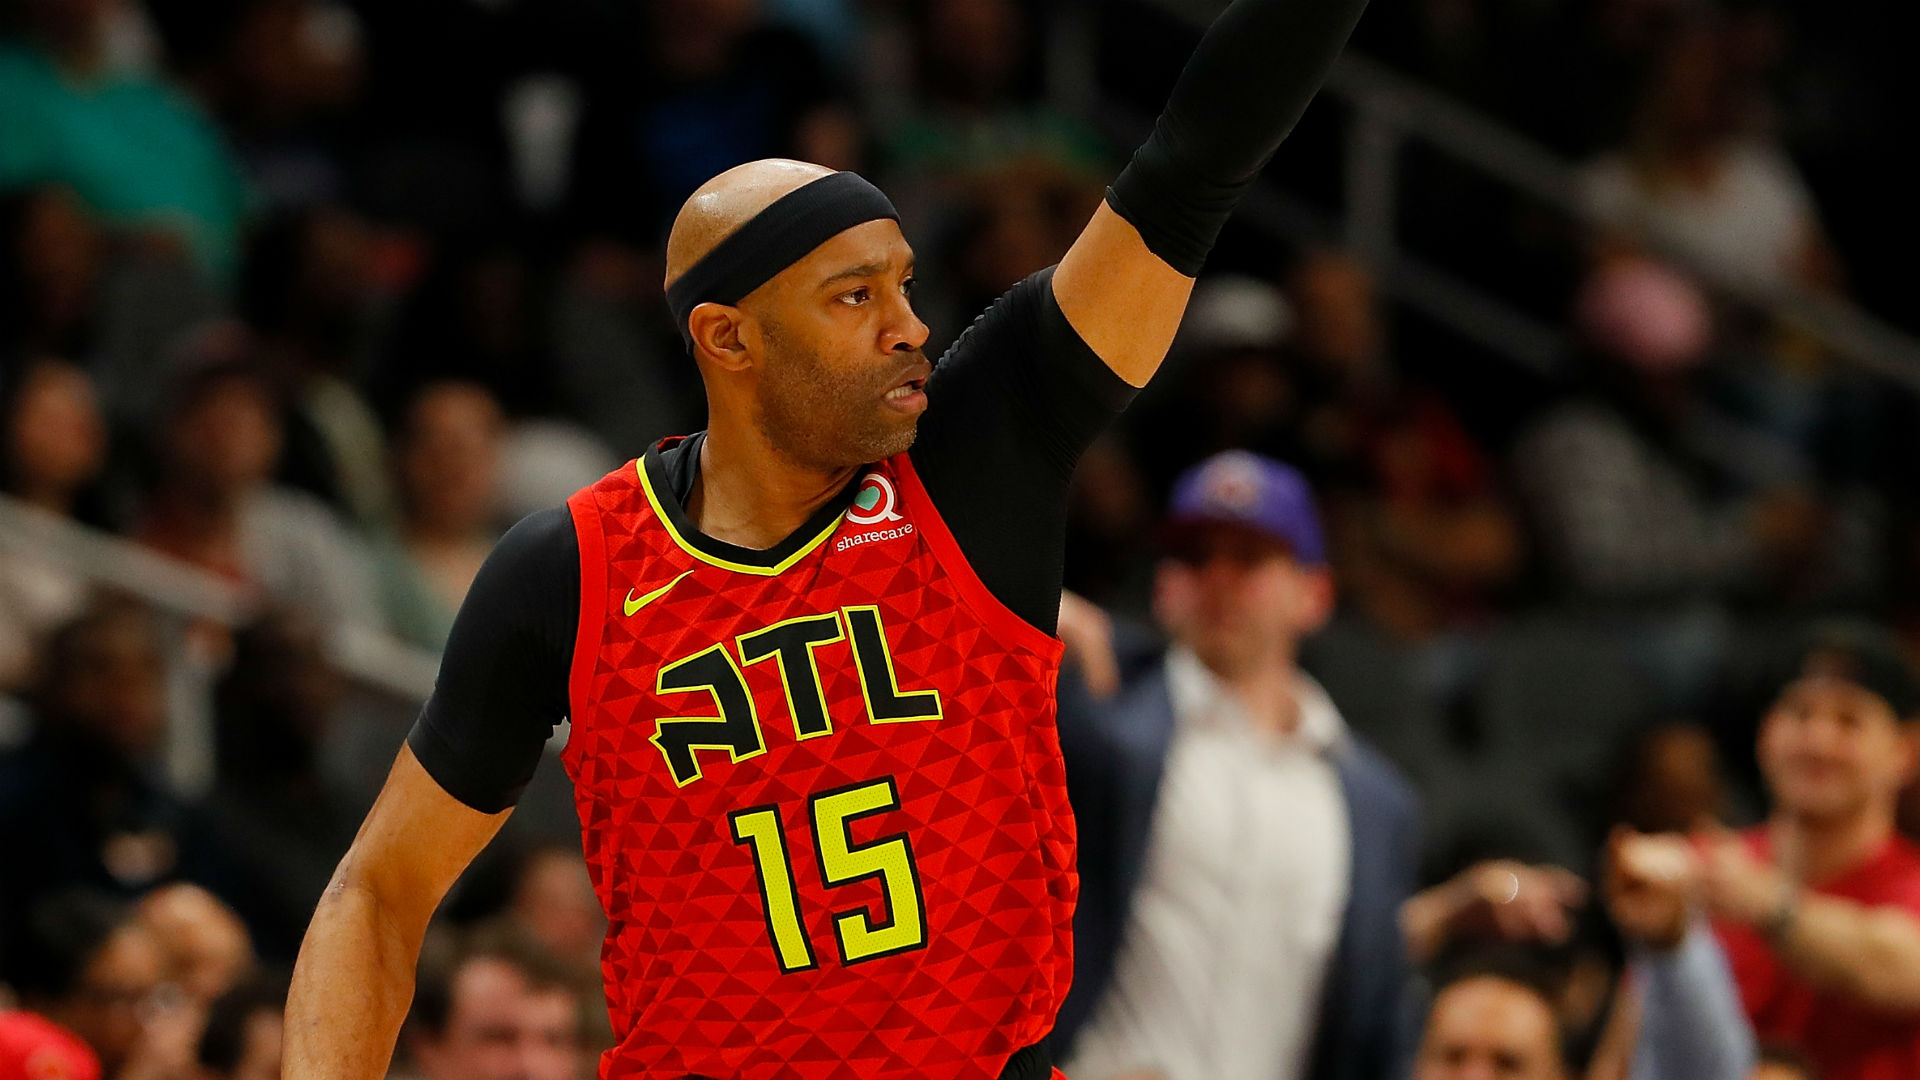 The Atlanta Hawks have brought back Vince Carter for a record-breaking 22nd NBA season.